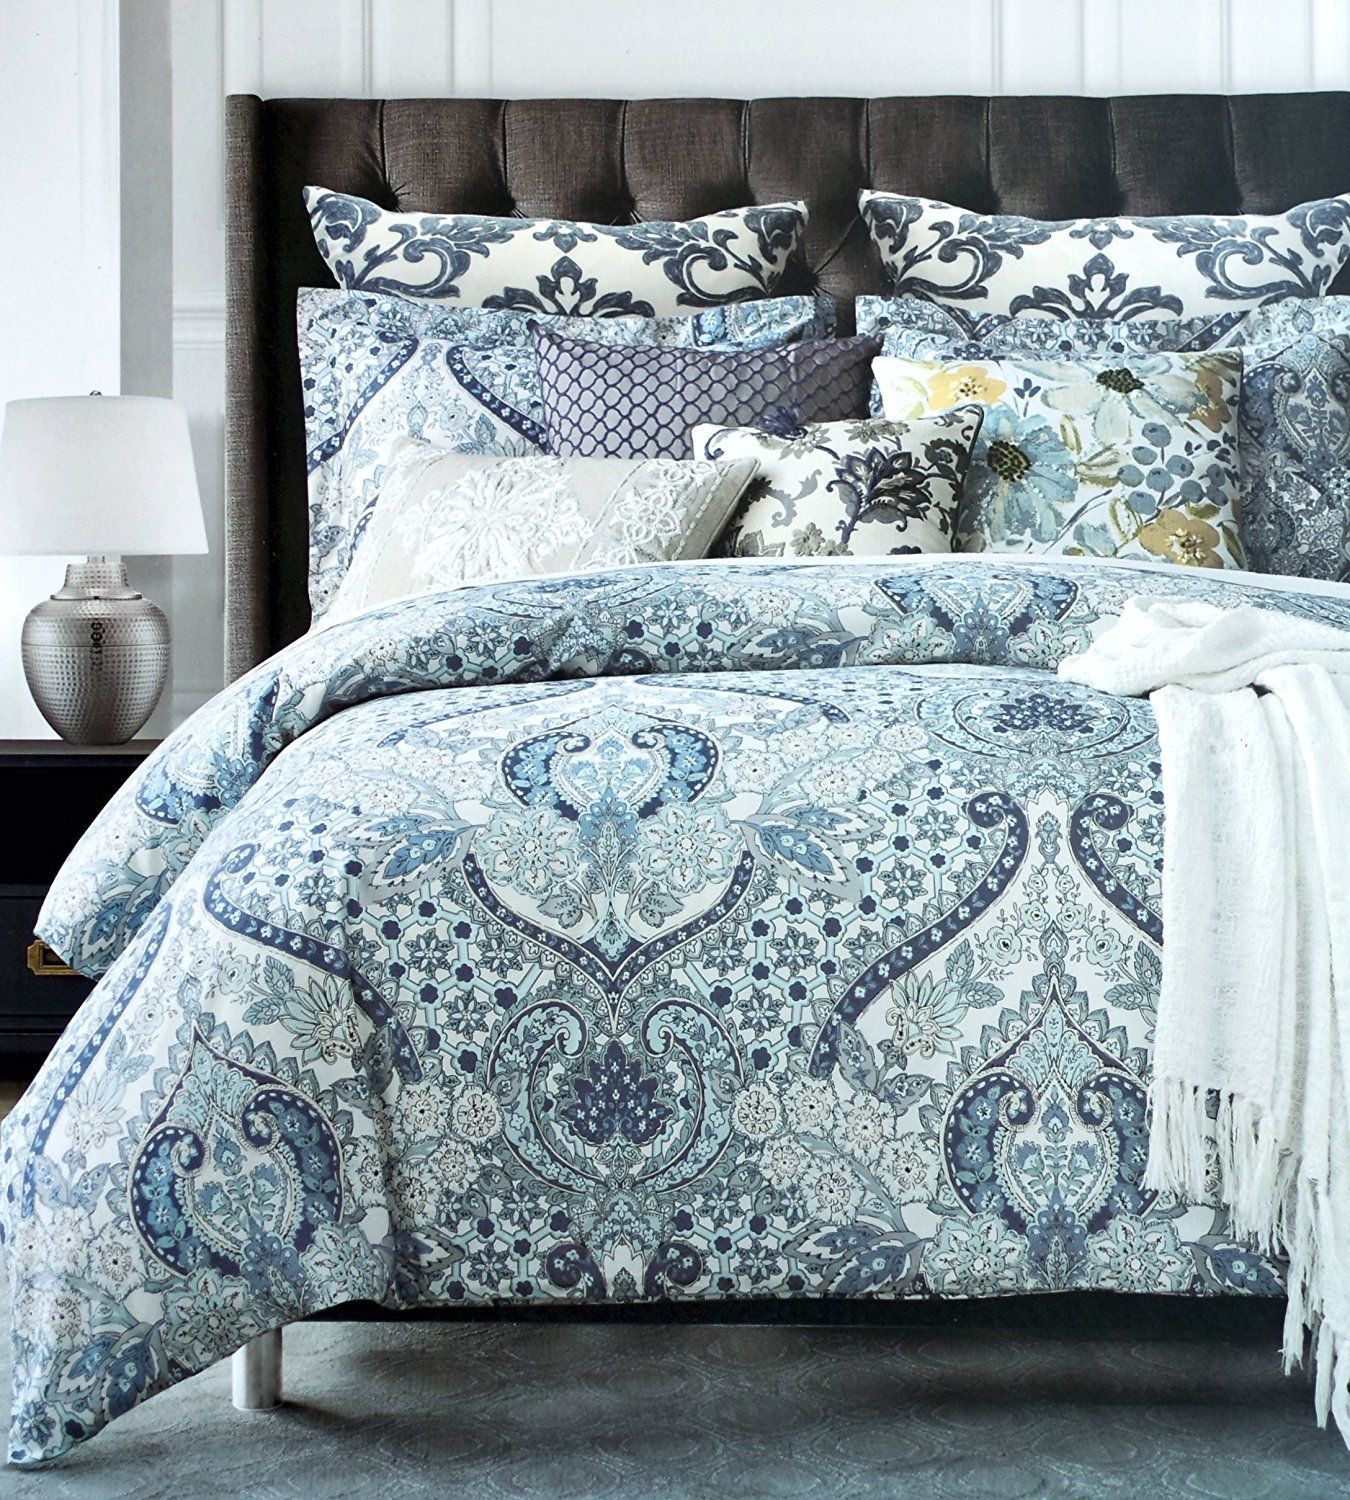 Boho Chic Bedding Sets With More Chic Bedding Tahari Bedding